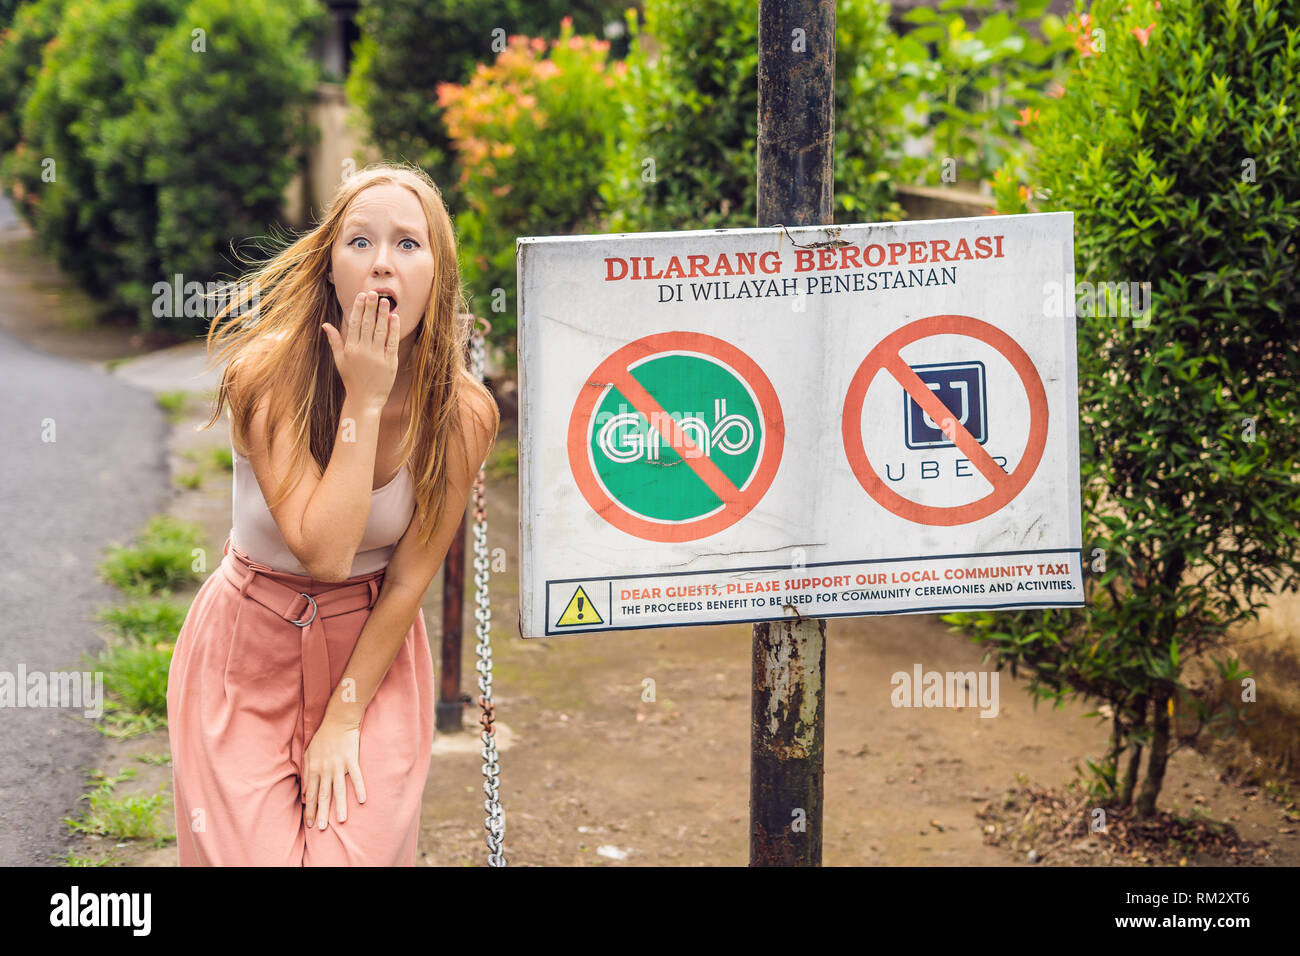 BALI, INDONESIA - 21 May, 2018: Young woman looks at protest sign on a wall in Indonesian objecting to Uber and Grab taxi drivers reads 'Uber and Grab - Stock Image